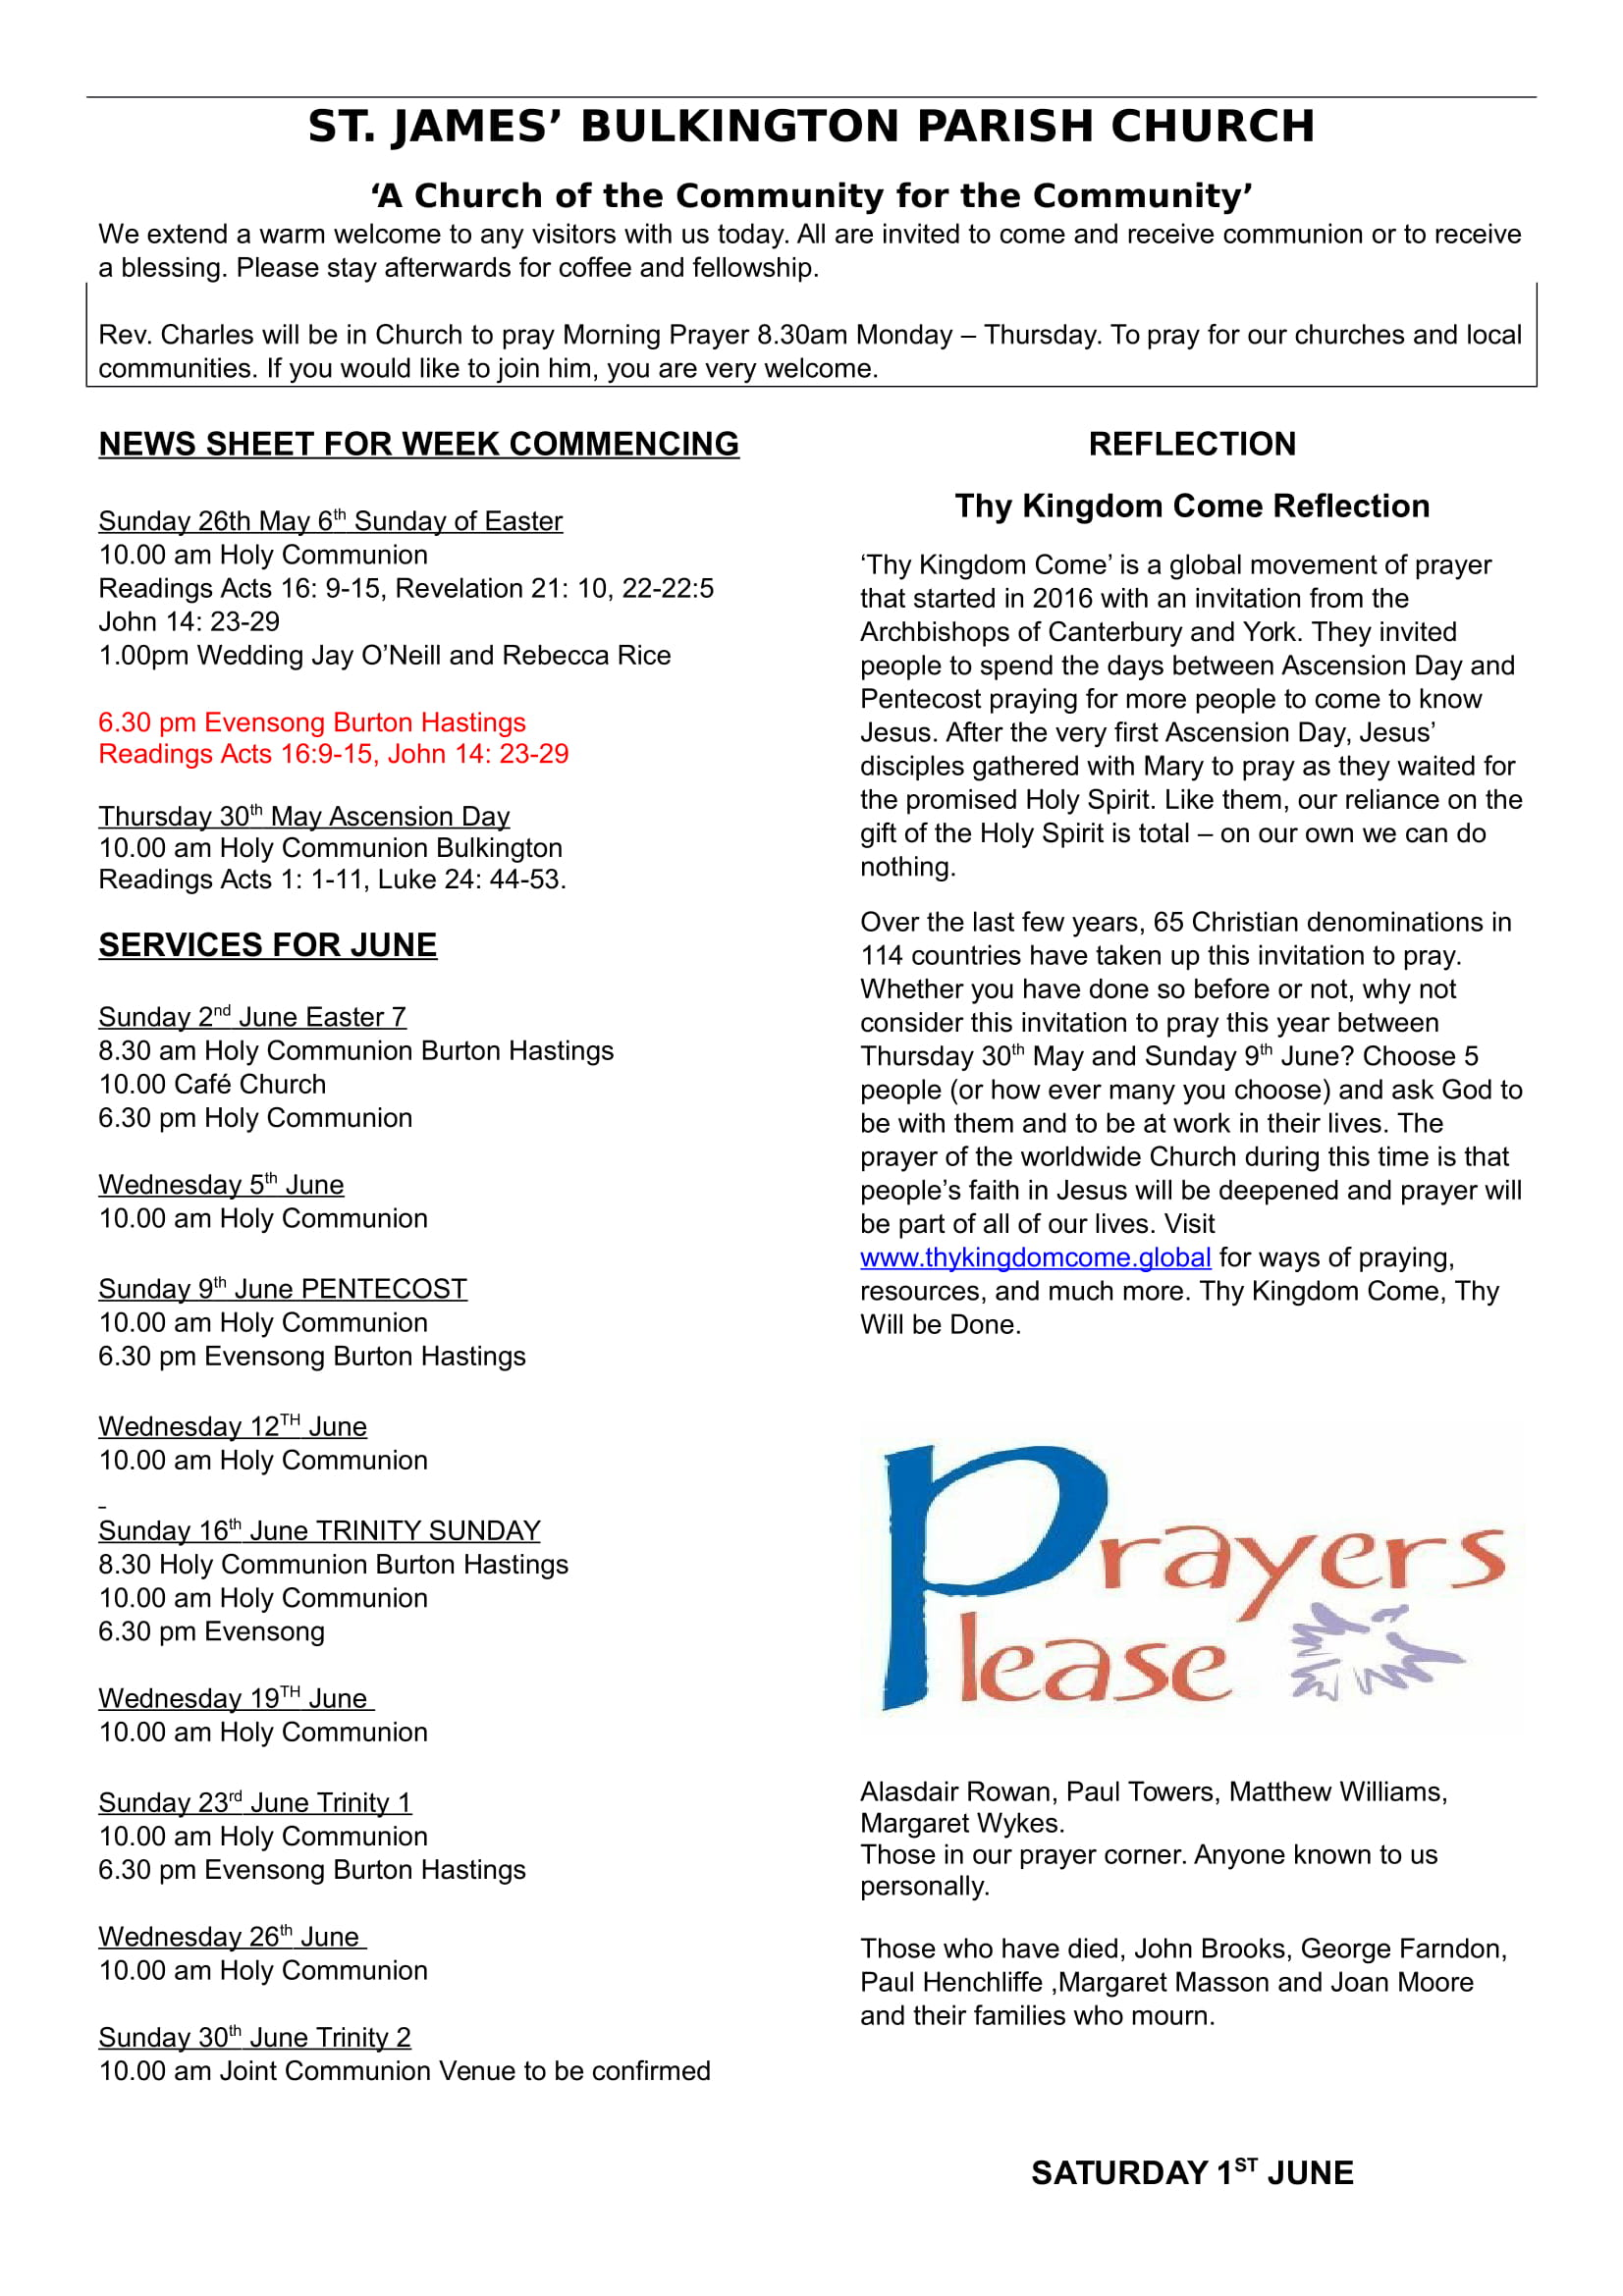 news sheet 26 May 1